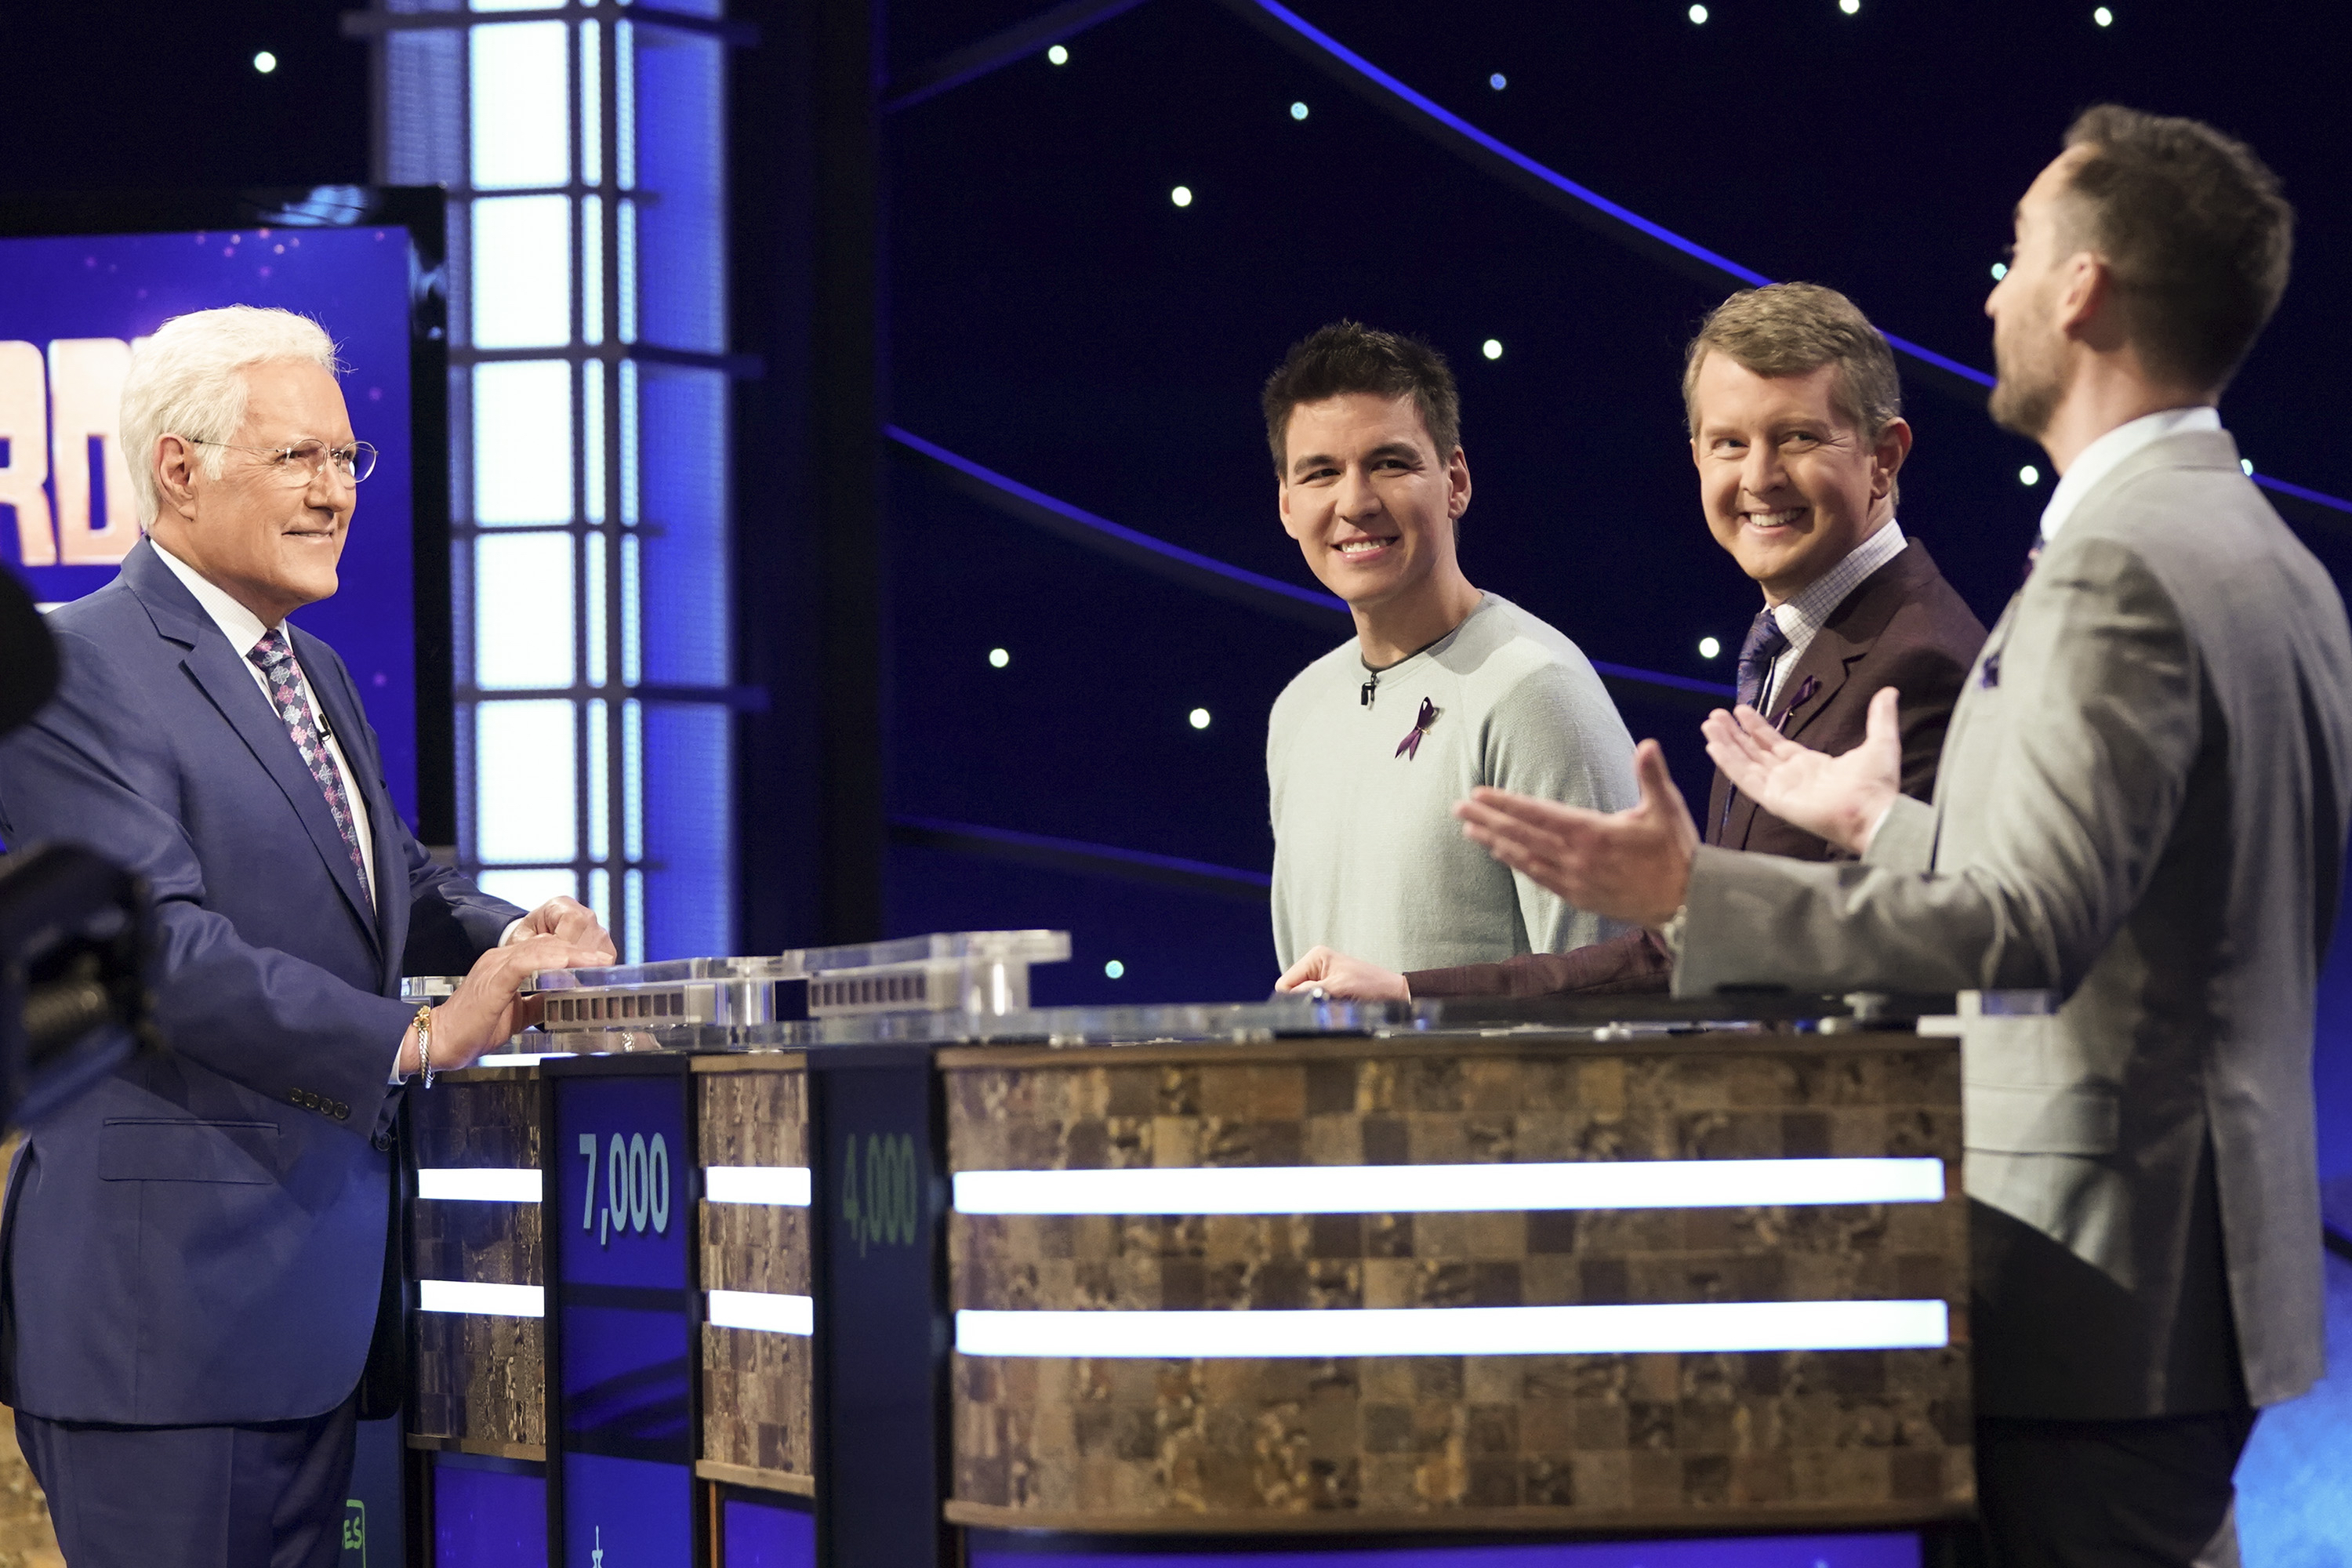 """Late """"Jeopardy!"""" host Alex Trebek chats with """"Jeopardy! The Greatest of All Time"""" contestants James Holzhauer, Ken Jennings and Brad Rutter."""